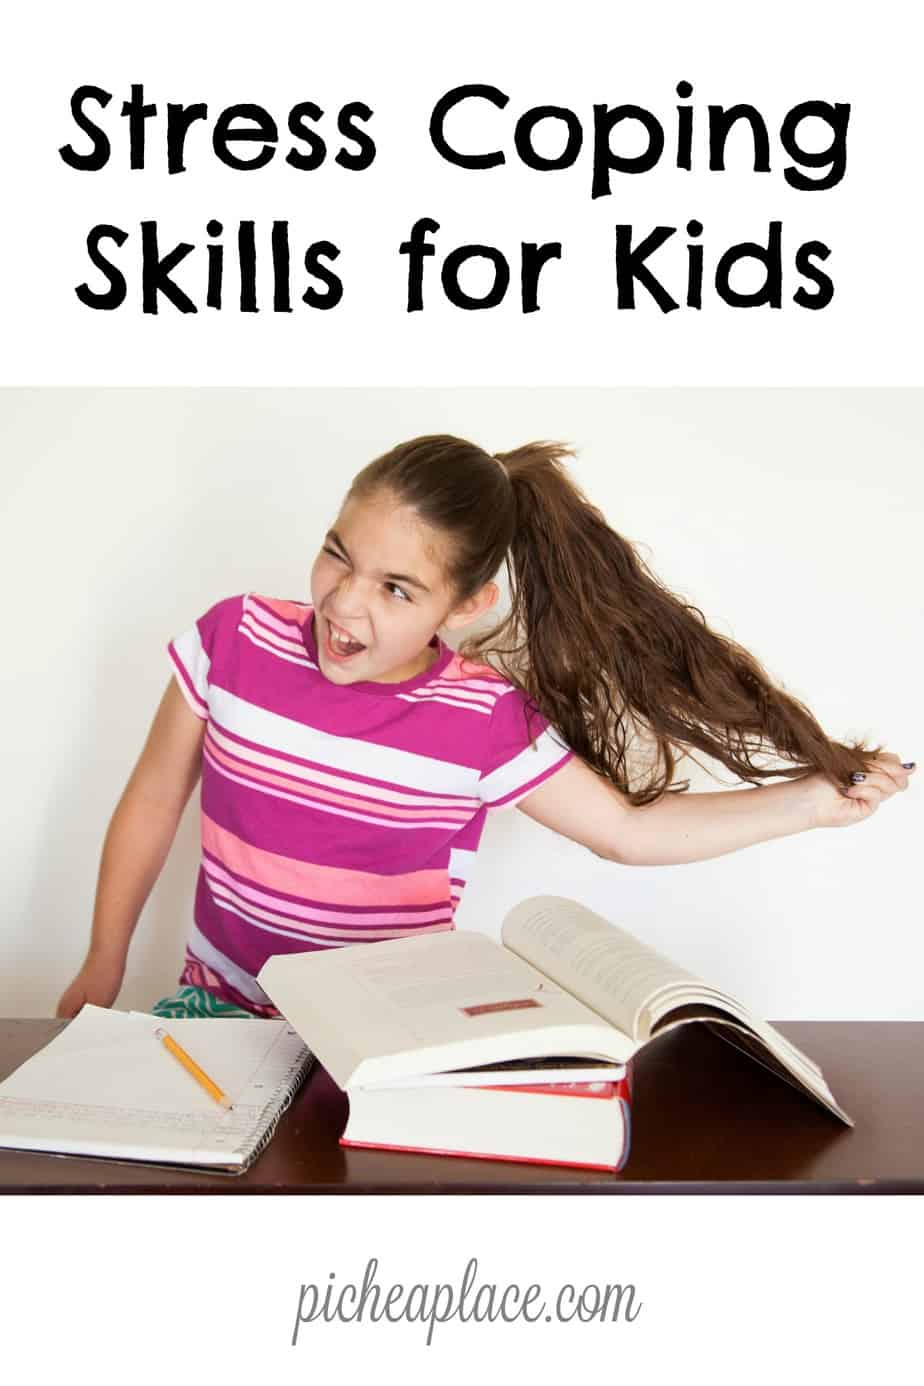 As busy parents, we often find ourselves stressed and needing ways to alleviate our stress. However, stress is not only a problem for adults. Children can feel stressed, too, and they need for the adults in their lives to teach them proper stress coping mechanisms. Here are some stress coping skills for kids that you can use to help your children deal with stress...